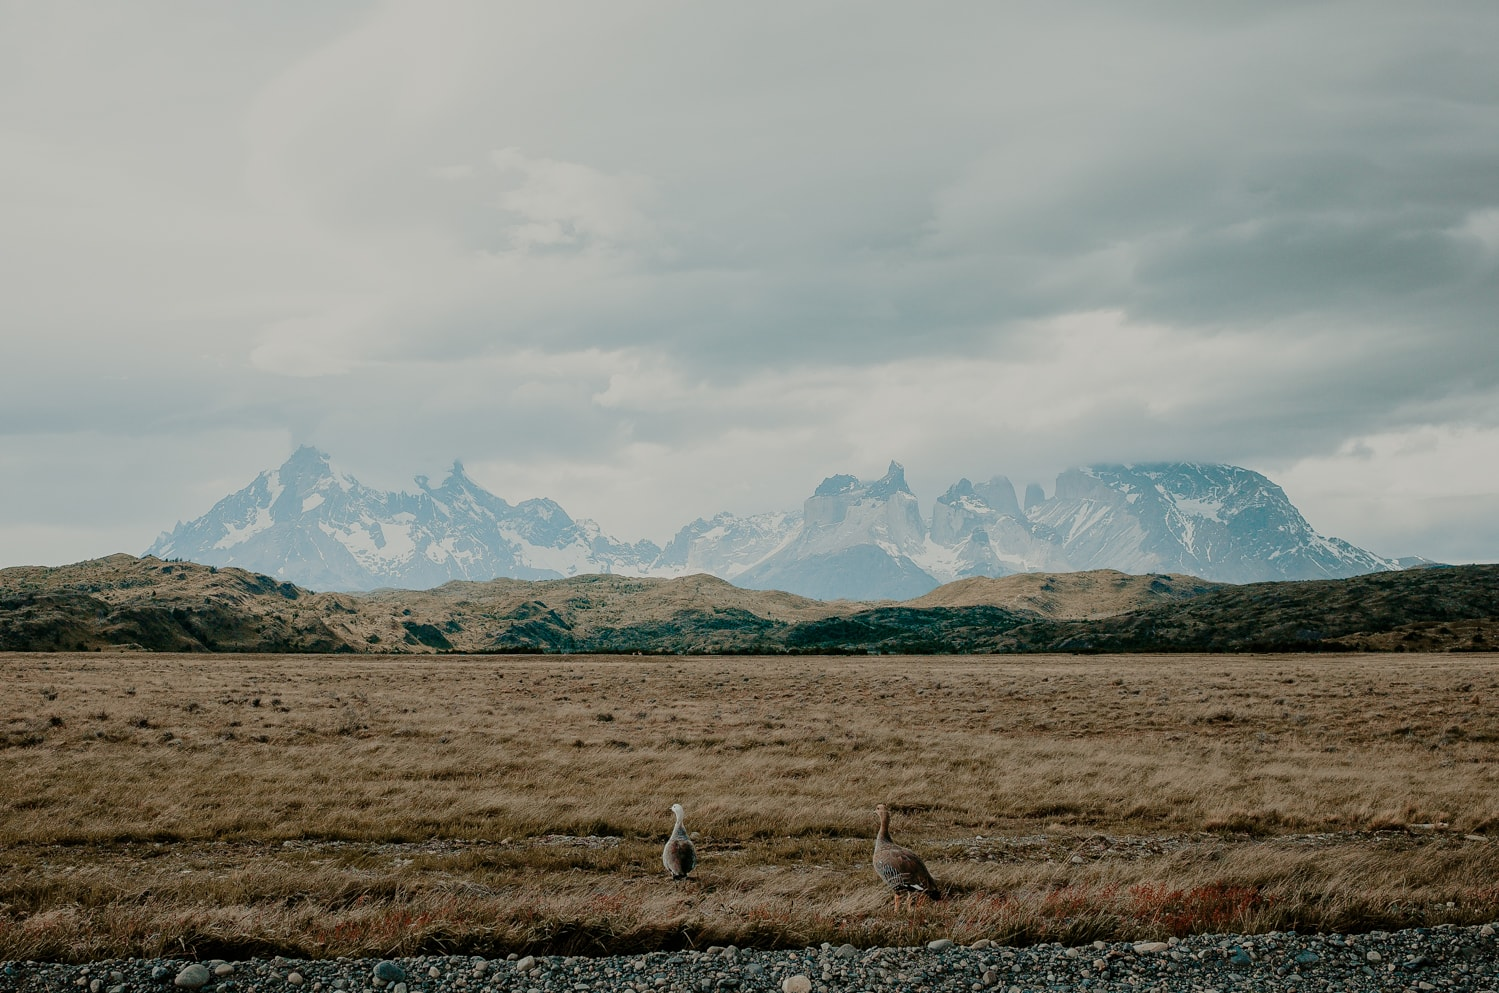 Birds in front of the mountains of Patagonia.